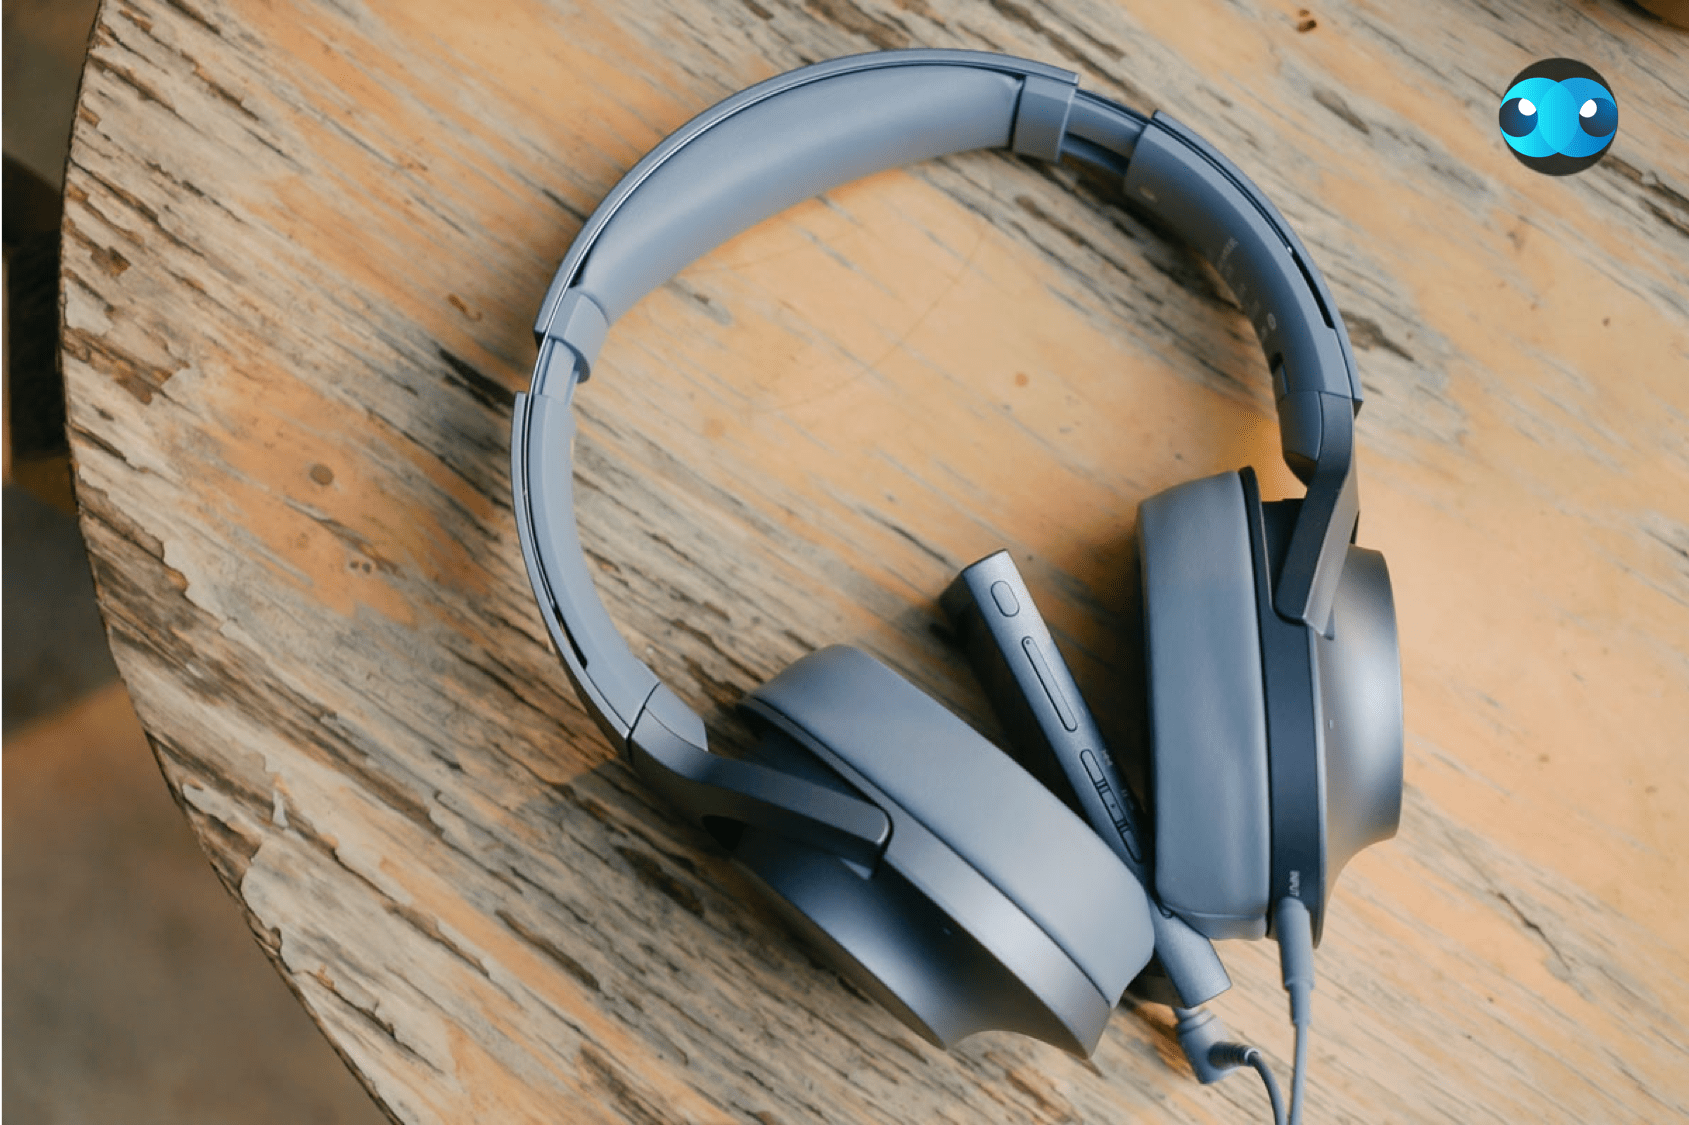 Recensione Sony WH-H900N  Cuffie over-ear con Noise Cancelling ... 525fafa1652a